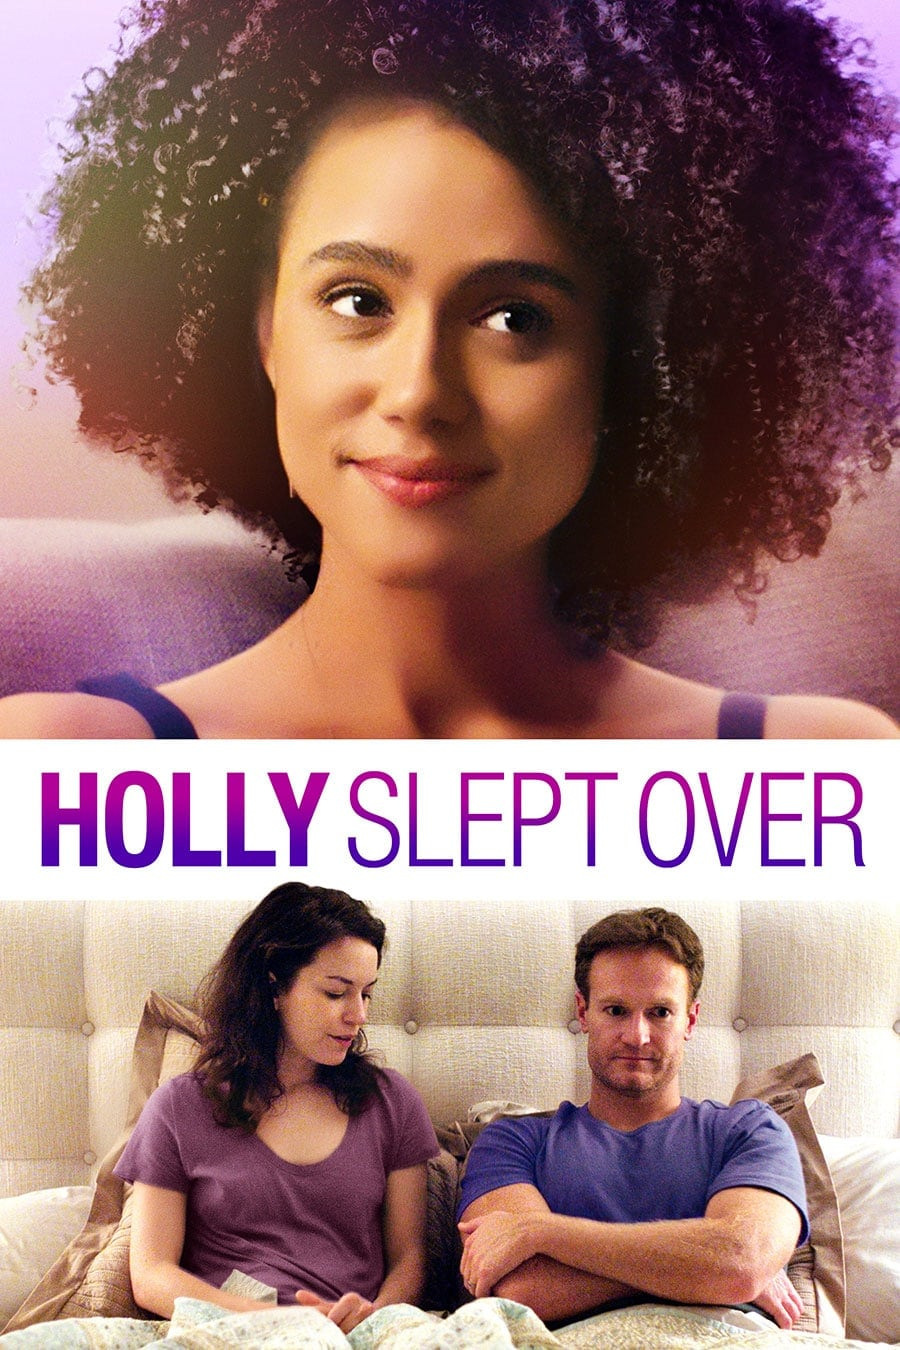 Holly Slept Over Movie Review